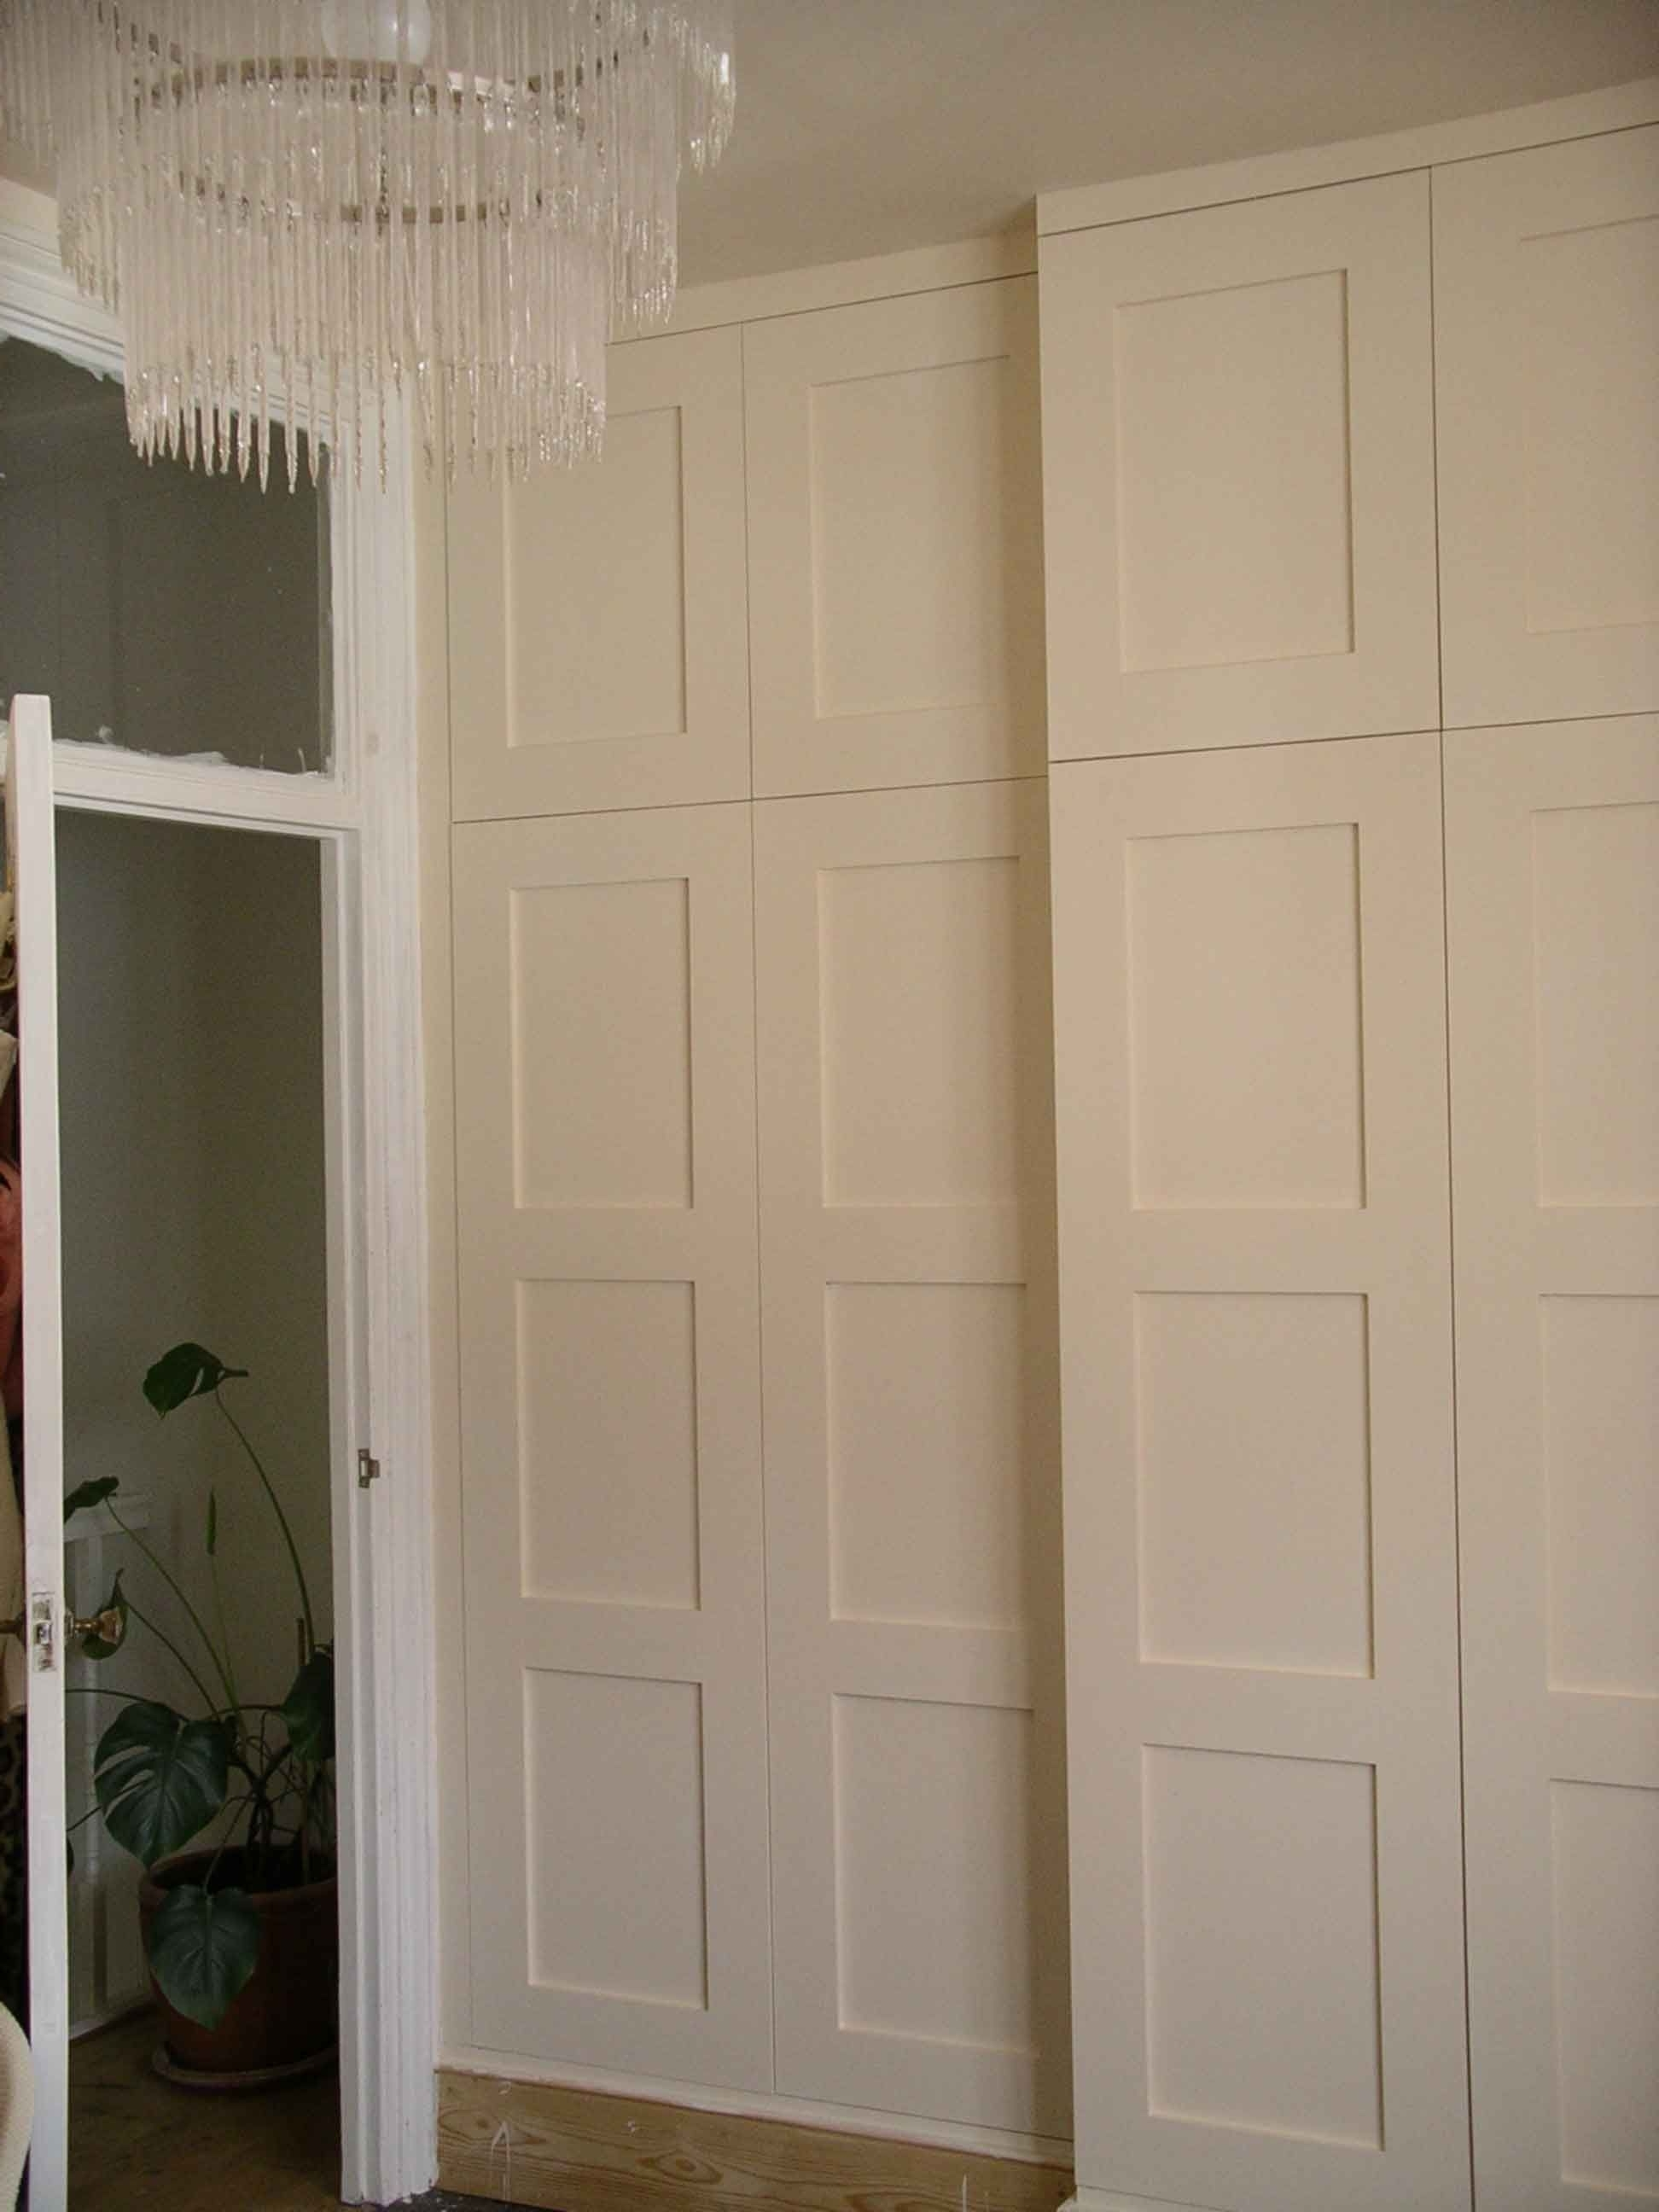 Best And Newest Wall Wardrobes Regarding Full Wall Shaker Style Panels – Google Search (View 9 of 15)